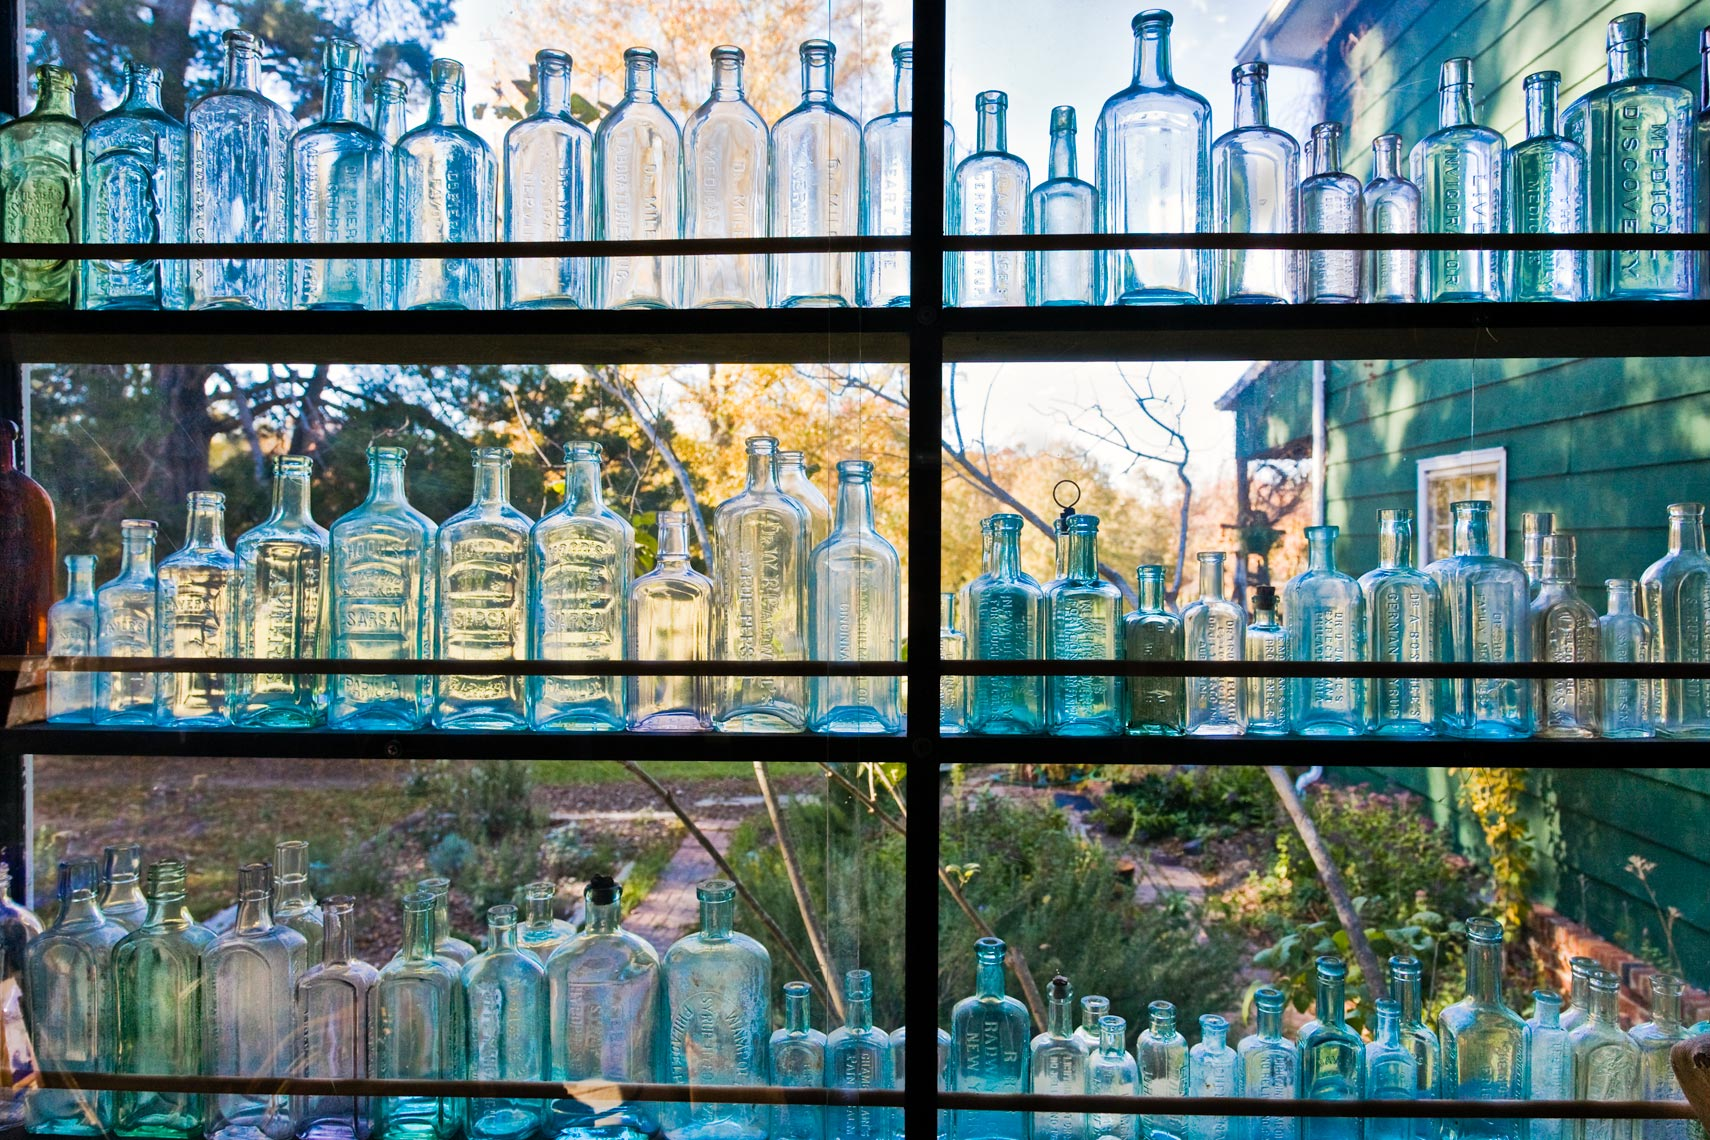 Old glass bottles in a window